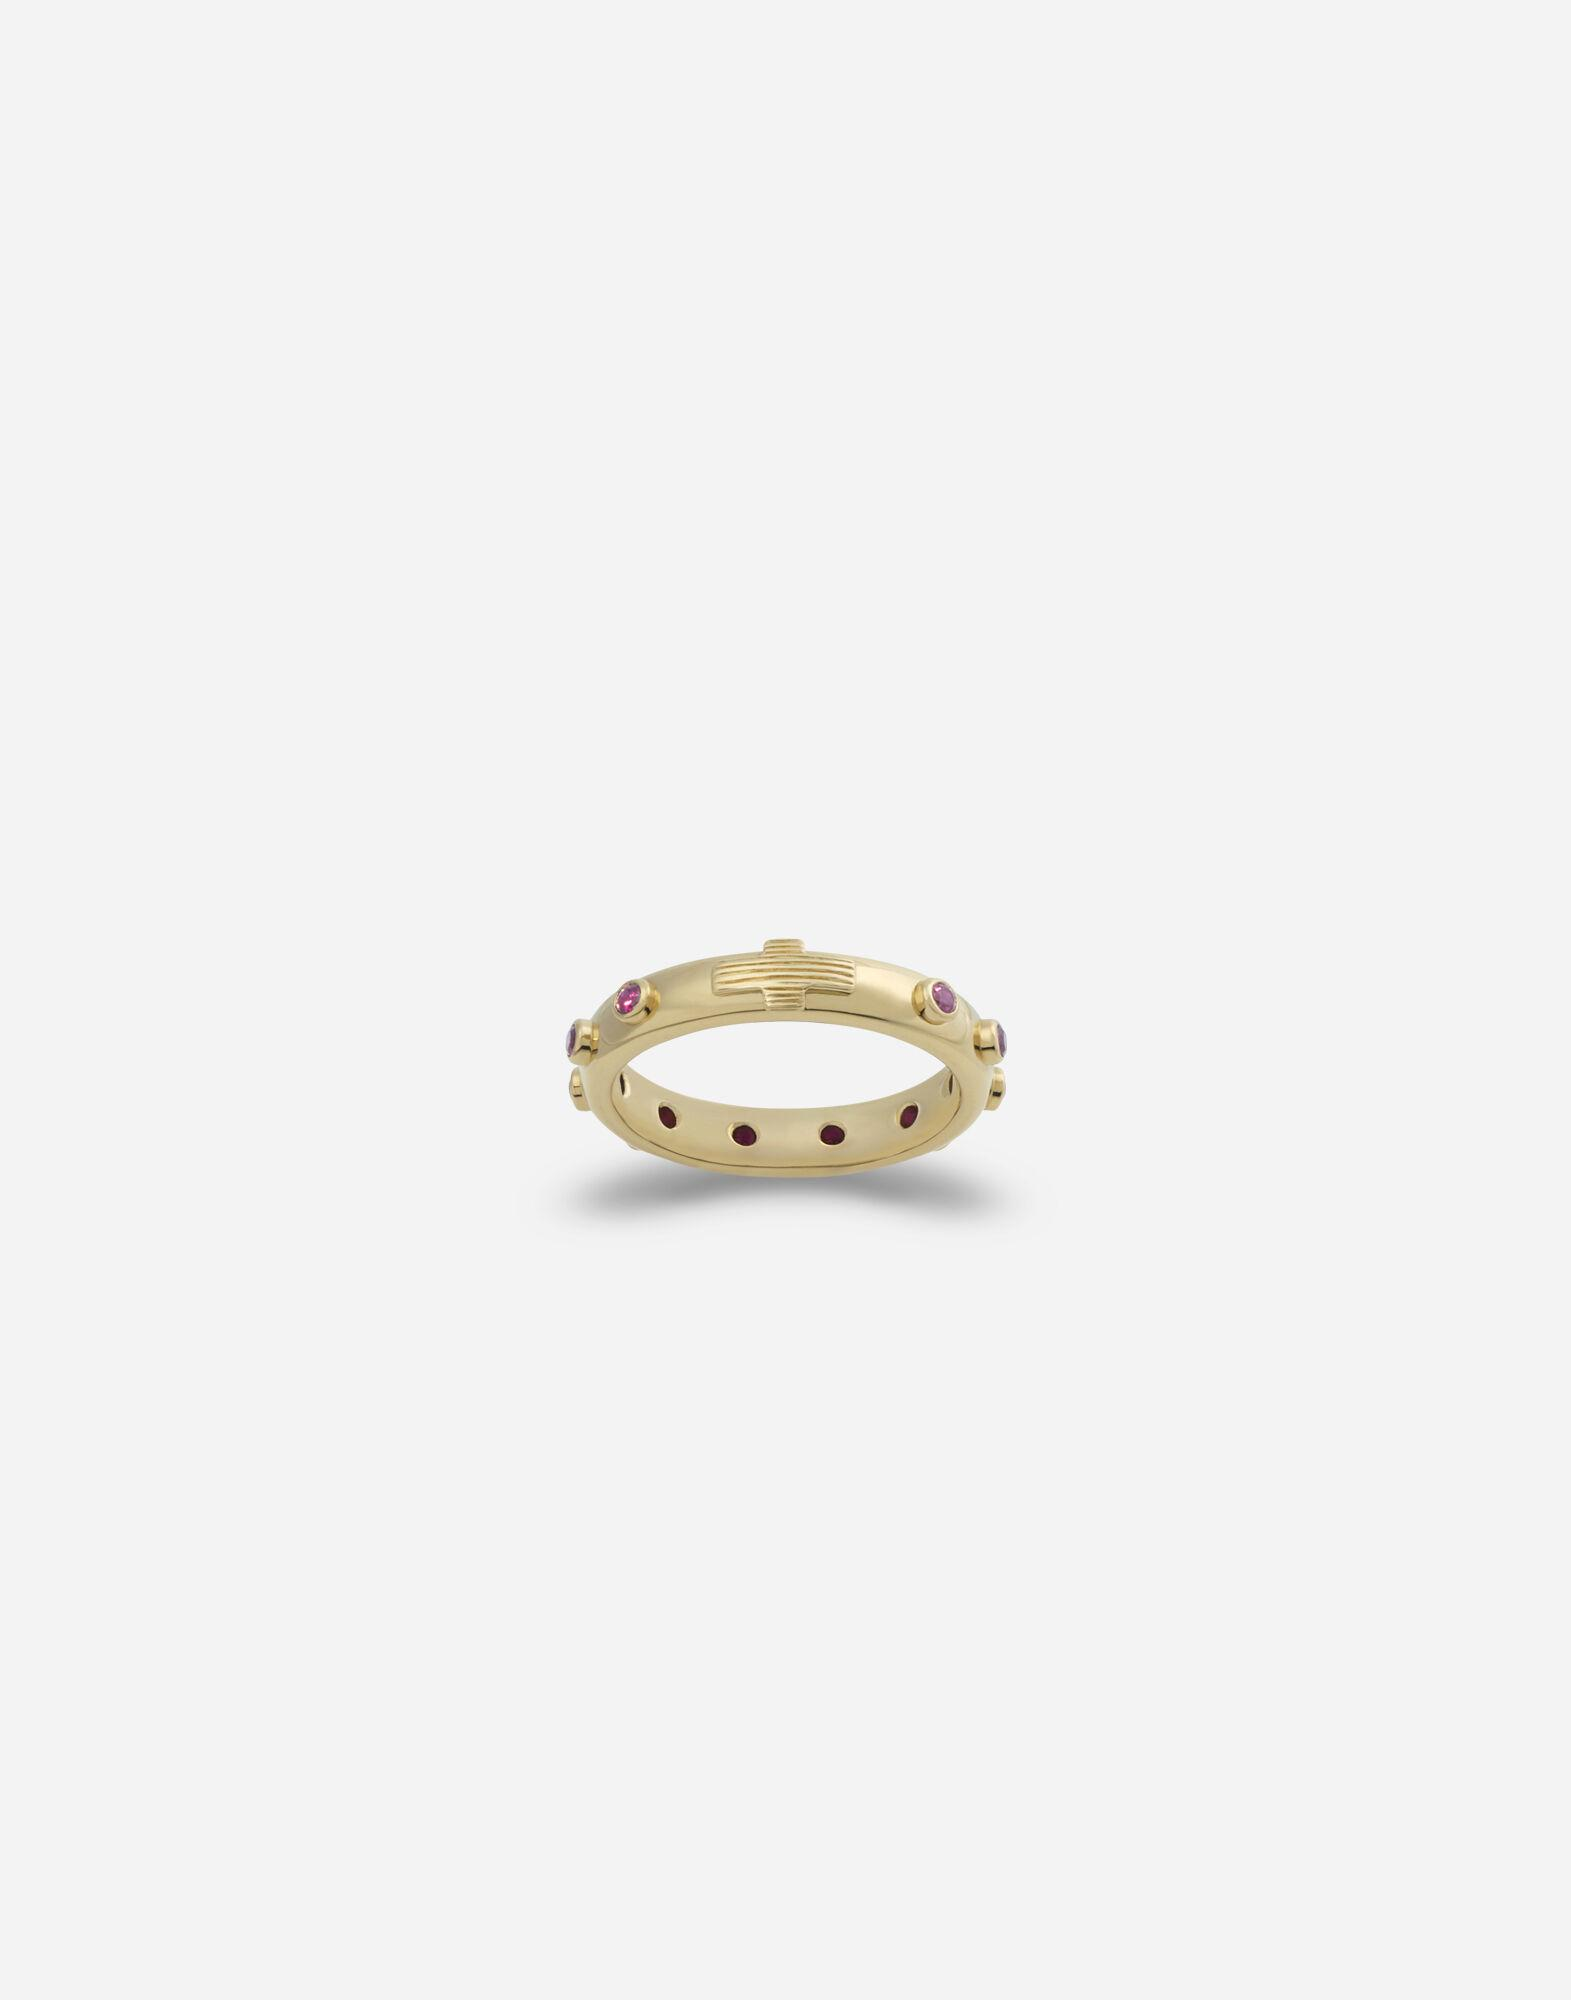 Devotion band in yellow gold with rubies